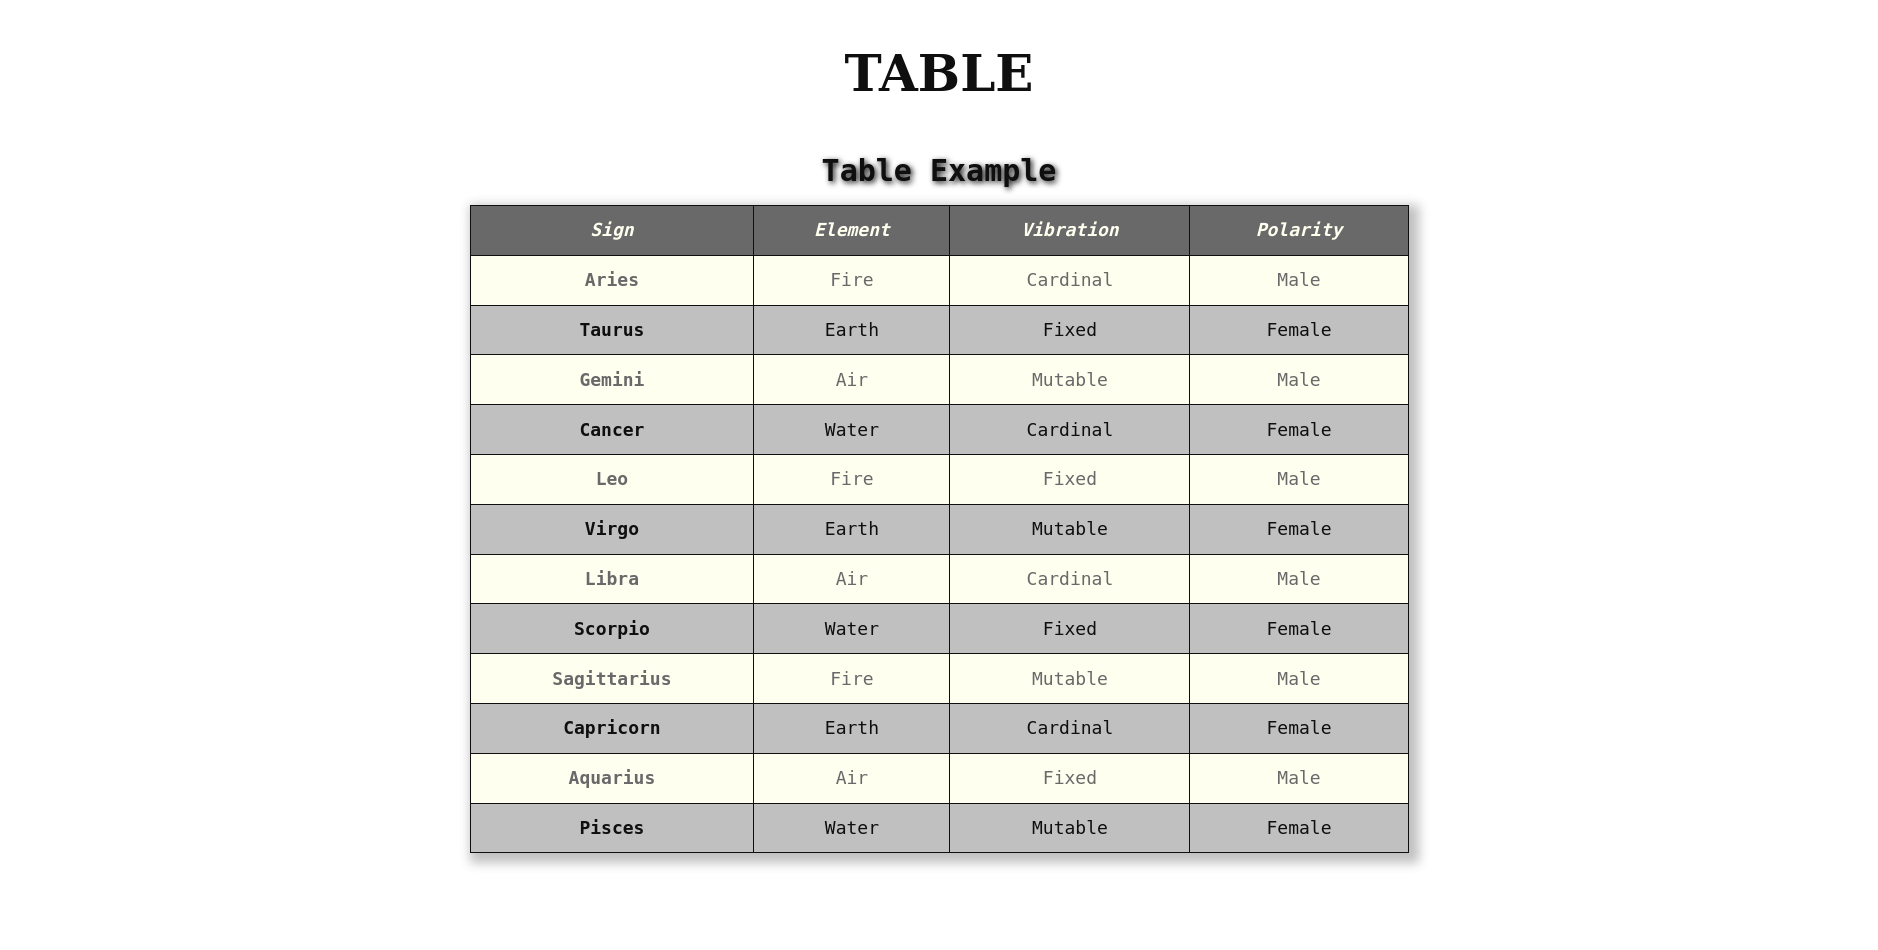 The Table example